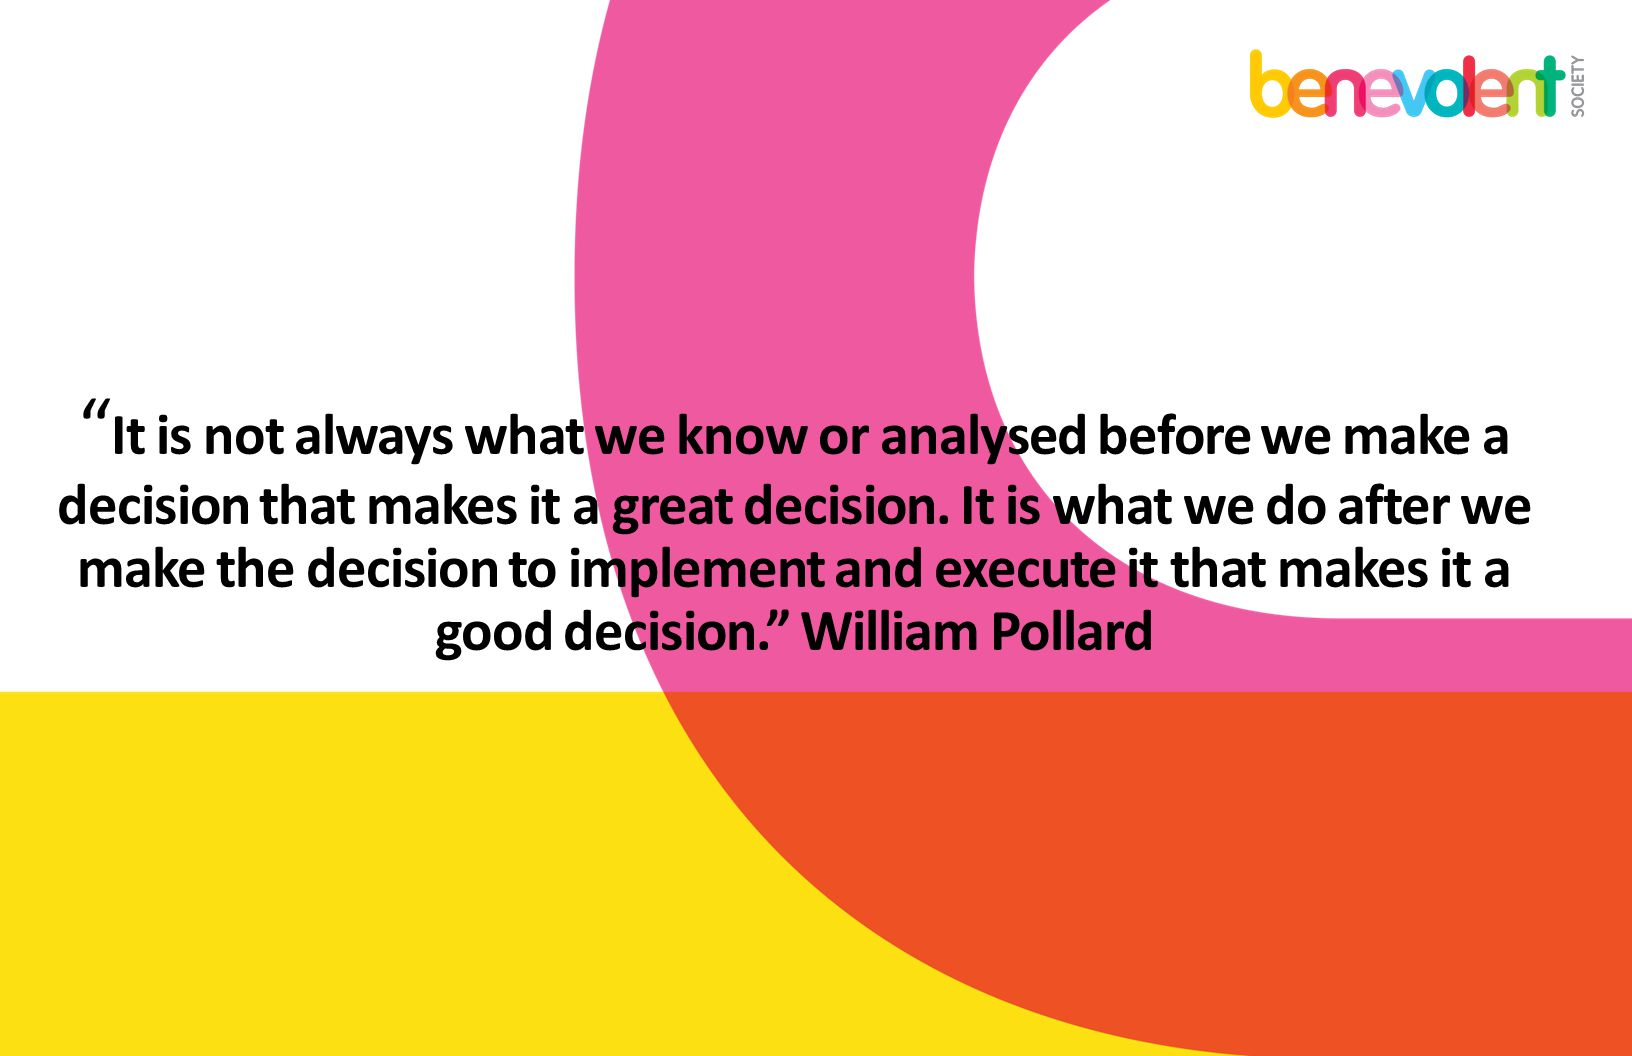 It is not always what we know or analysed before we make a decision that makes it a great decision.